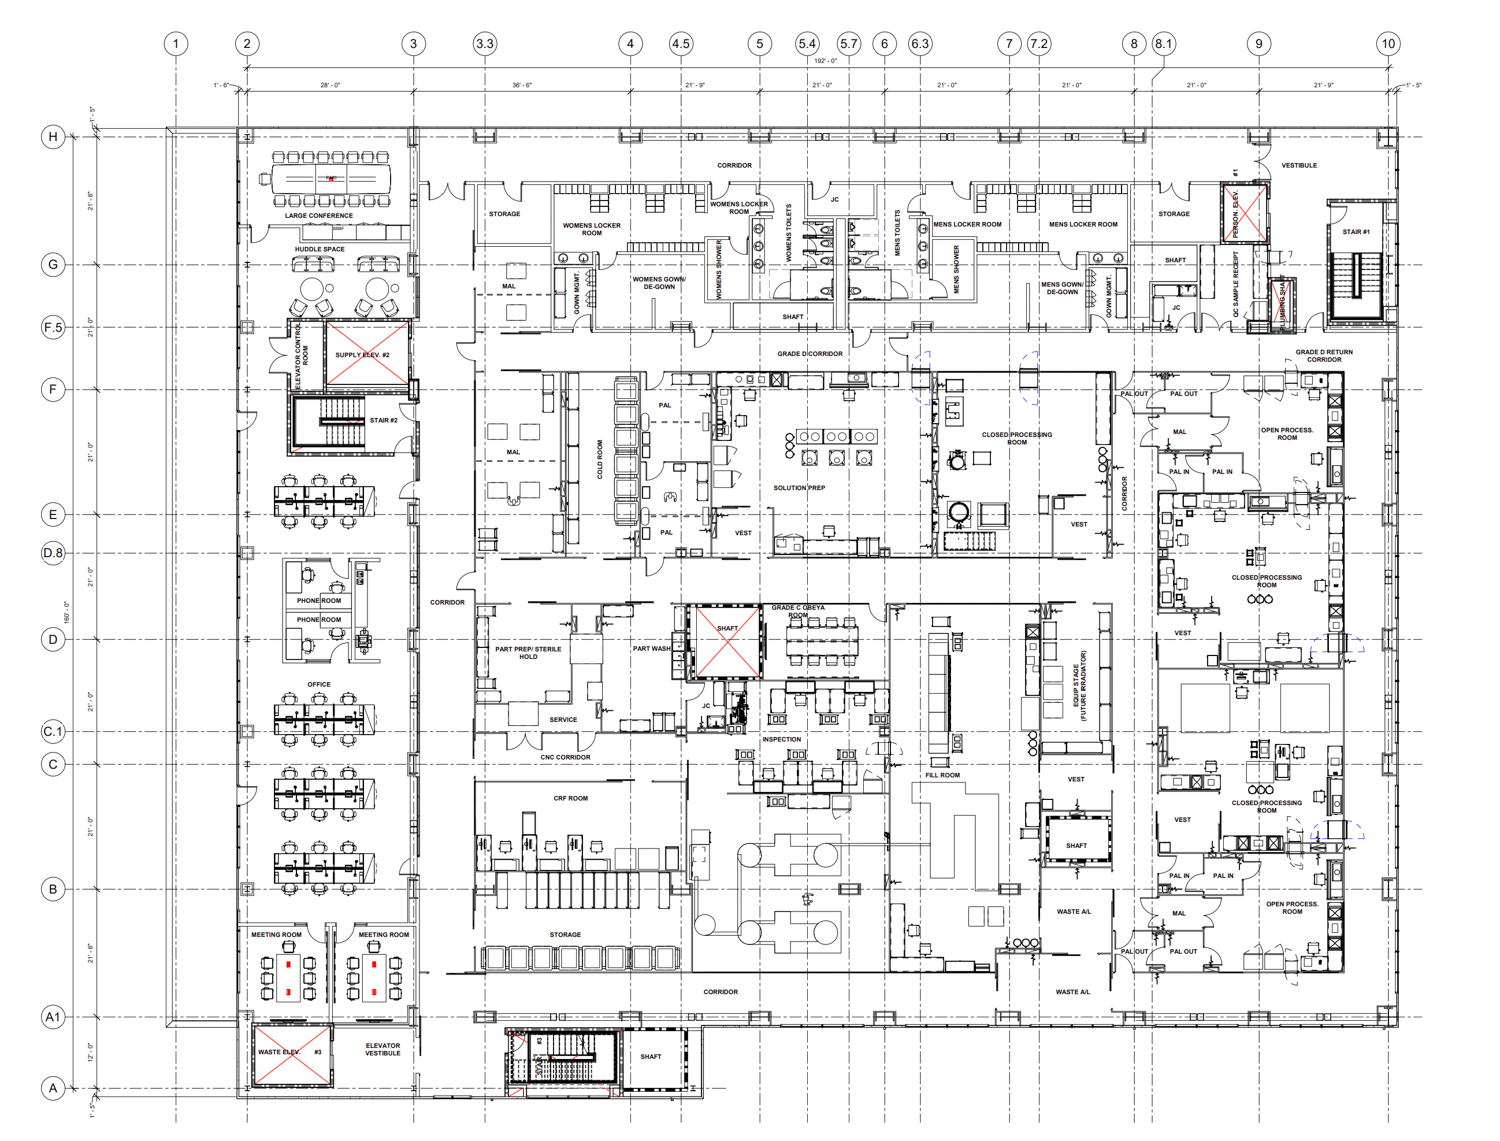 800 Dwight Way third floor office plan, drawing courtesy Bayer